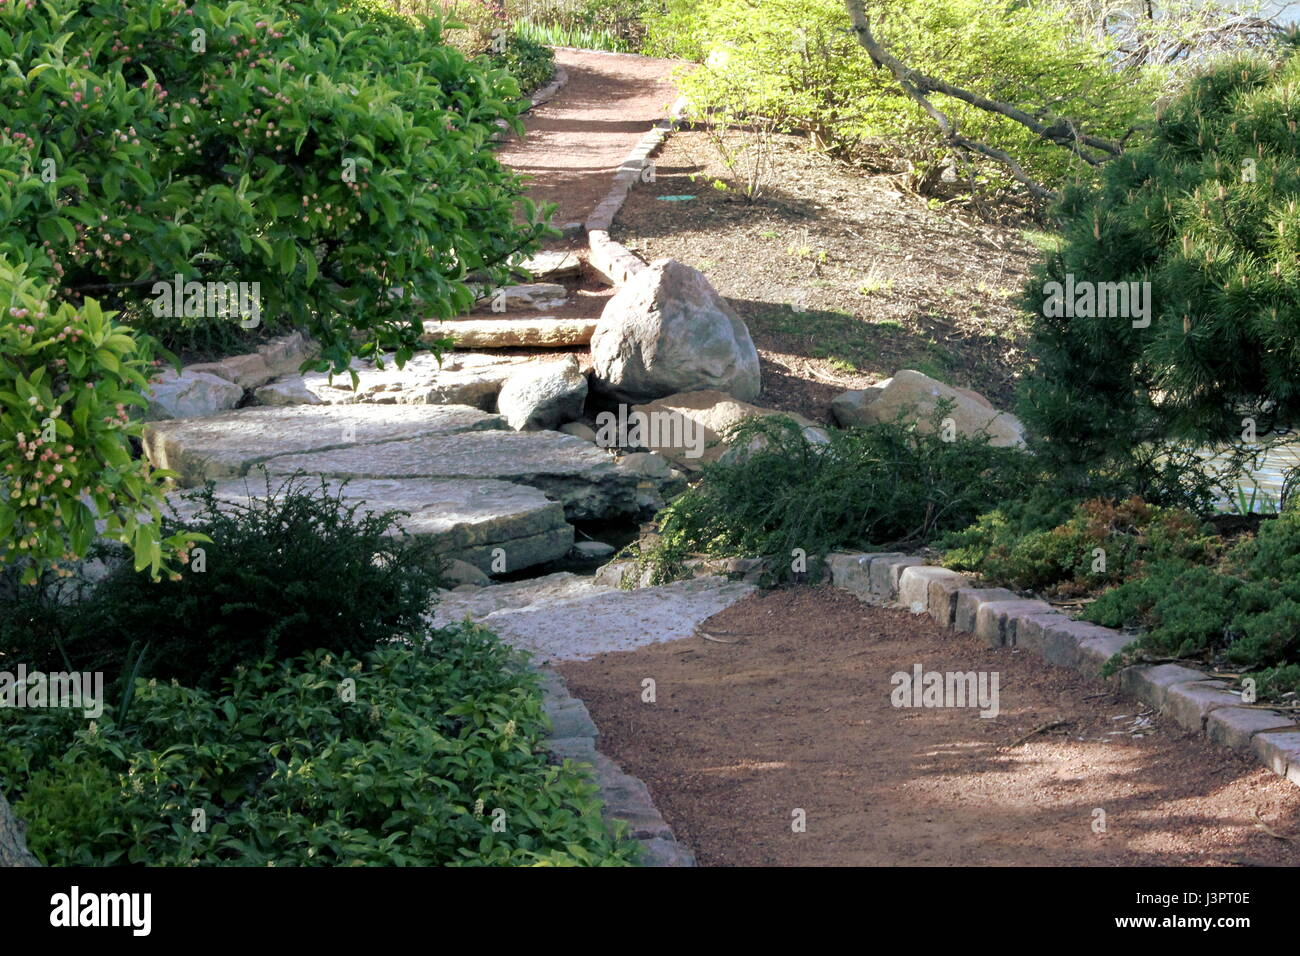 A Walking Path At The Osaka Garden In Jackson Park, Chicago, IL